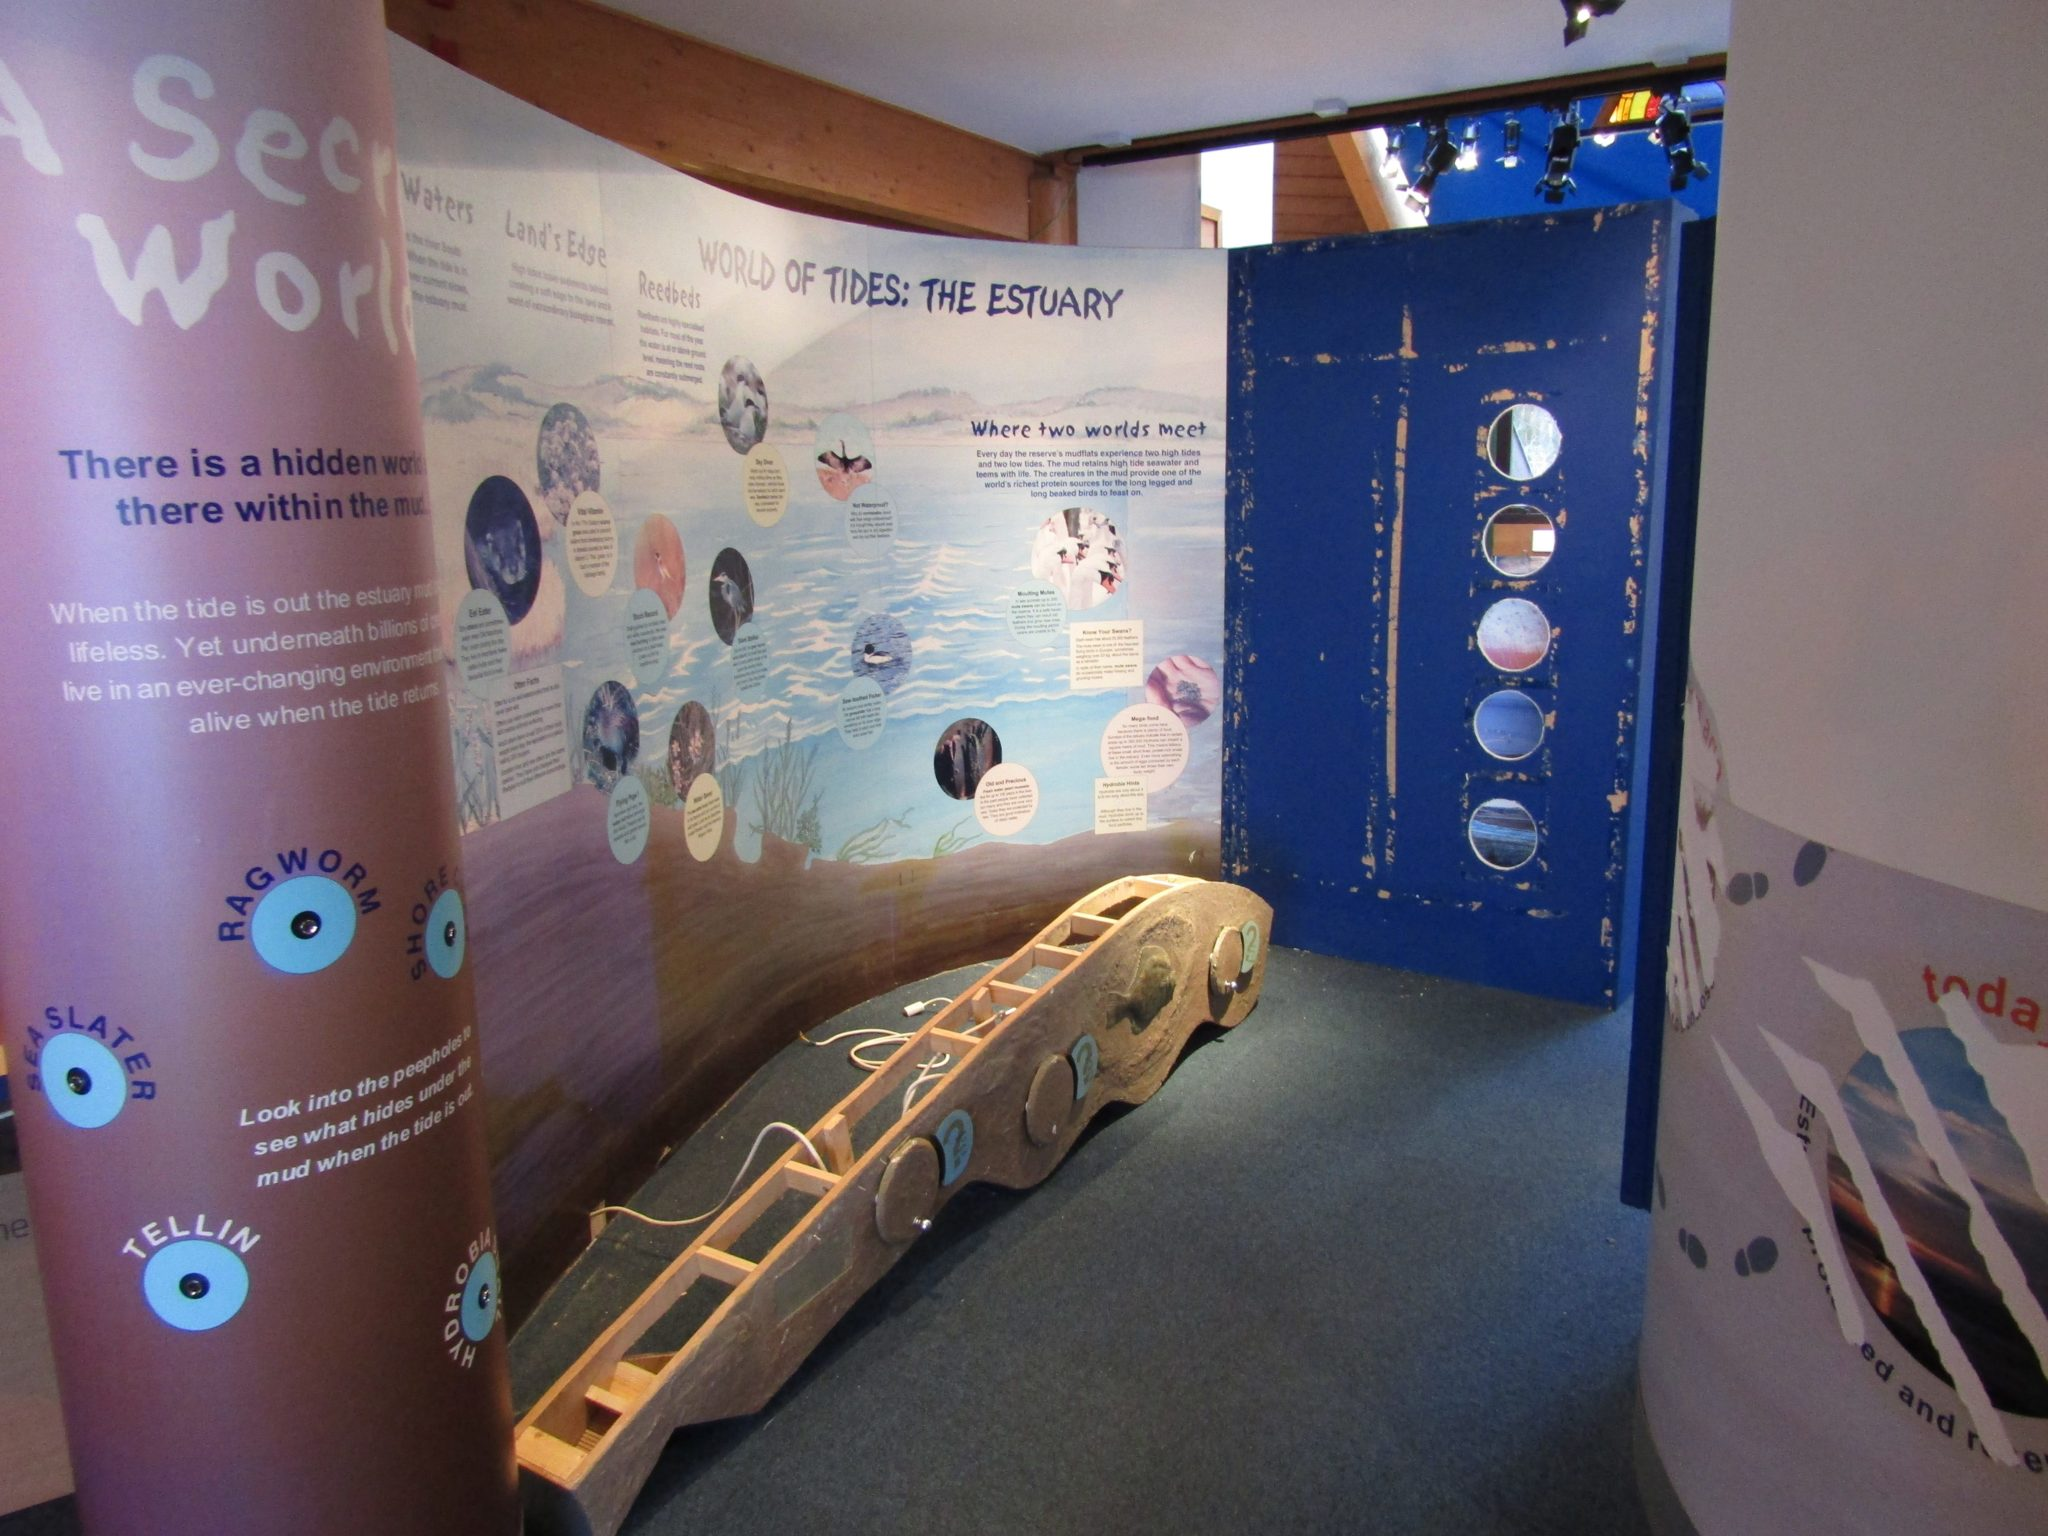 What is new at the Visitor Centre?